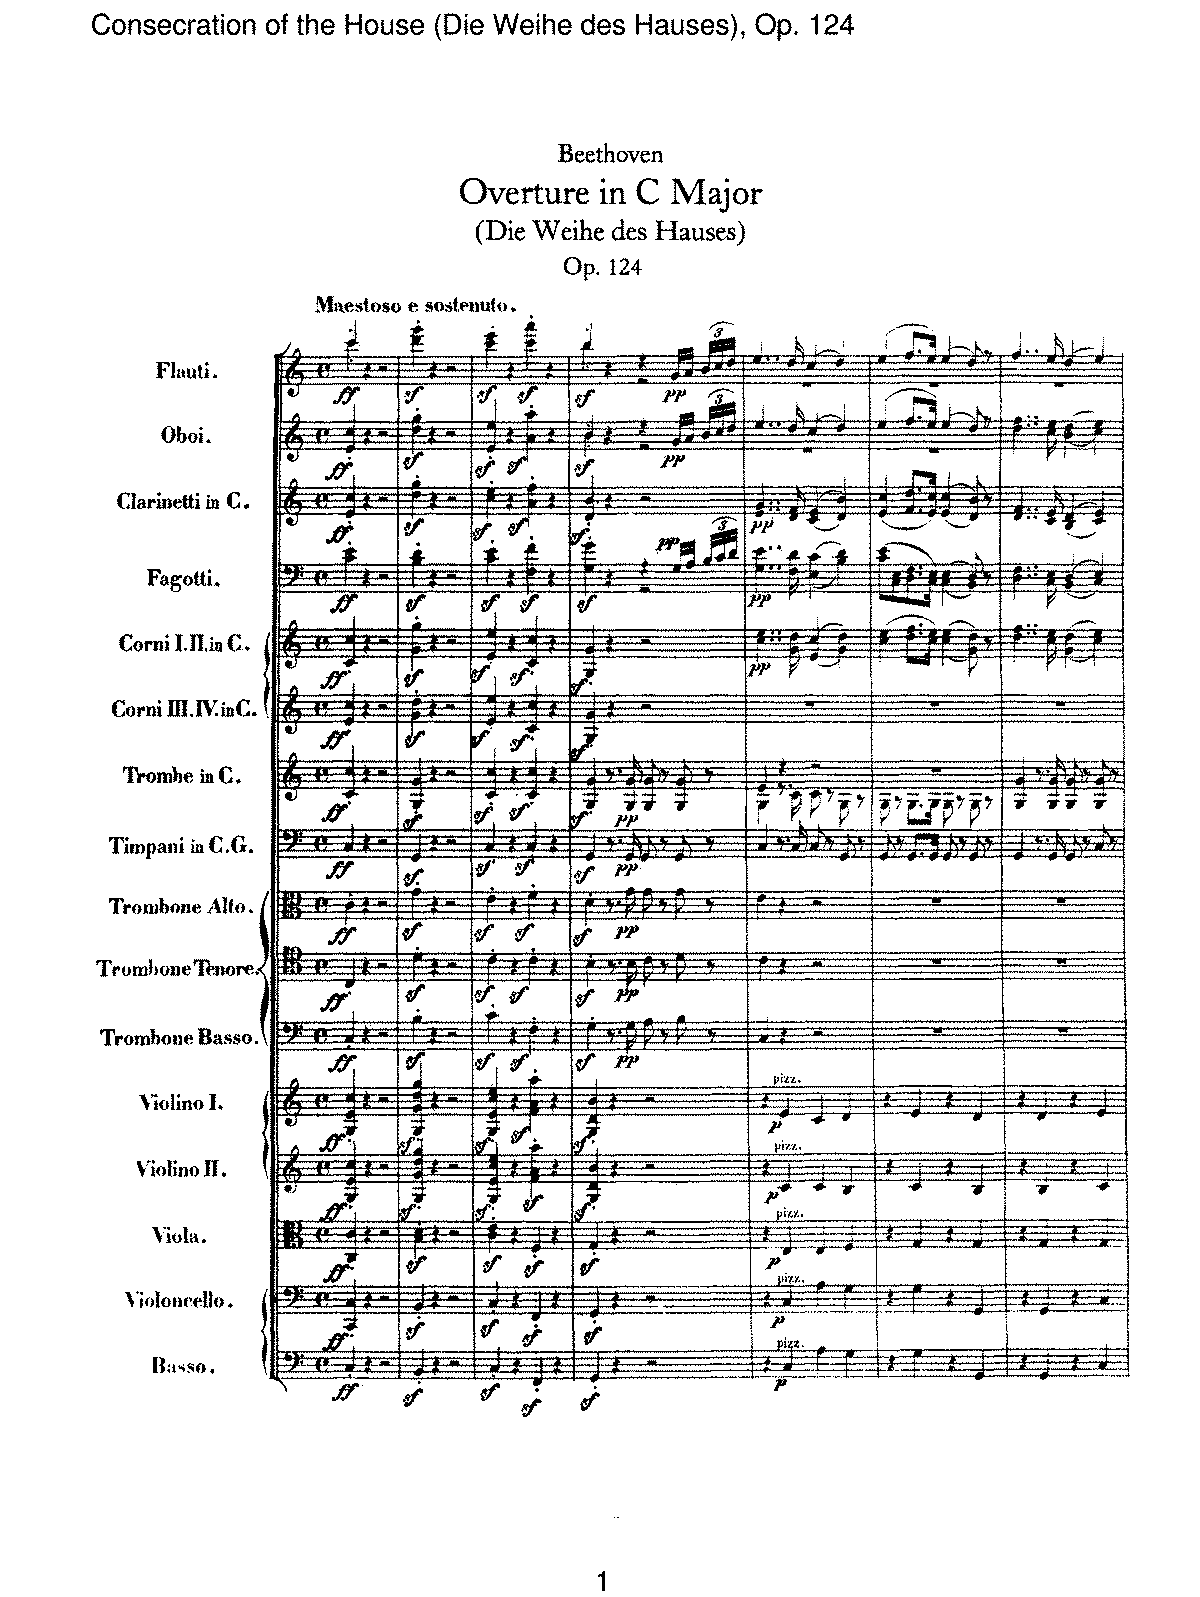 Beethoven - Consecration of the House (Die Weihe des Hauses), Op 124.pdf